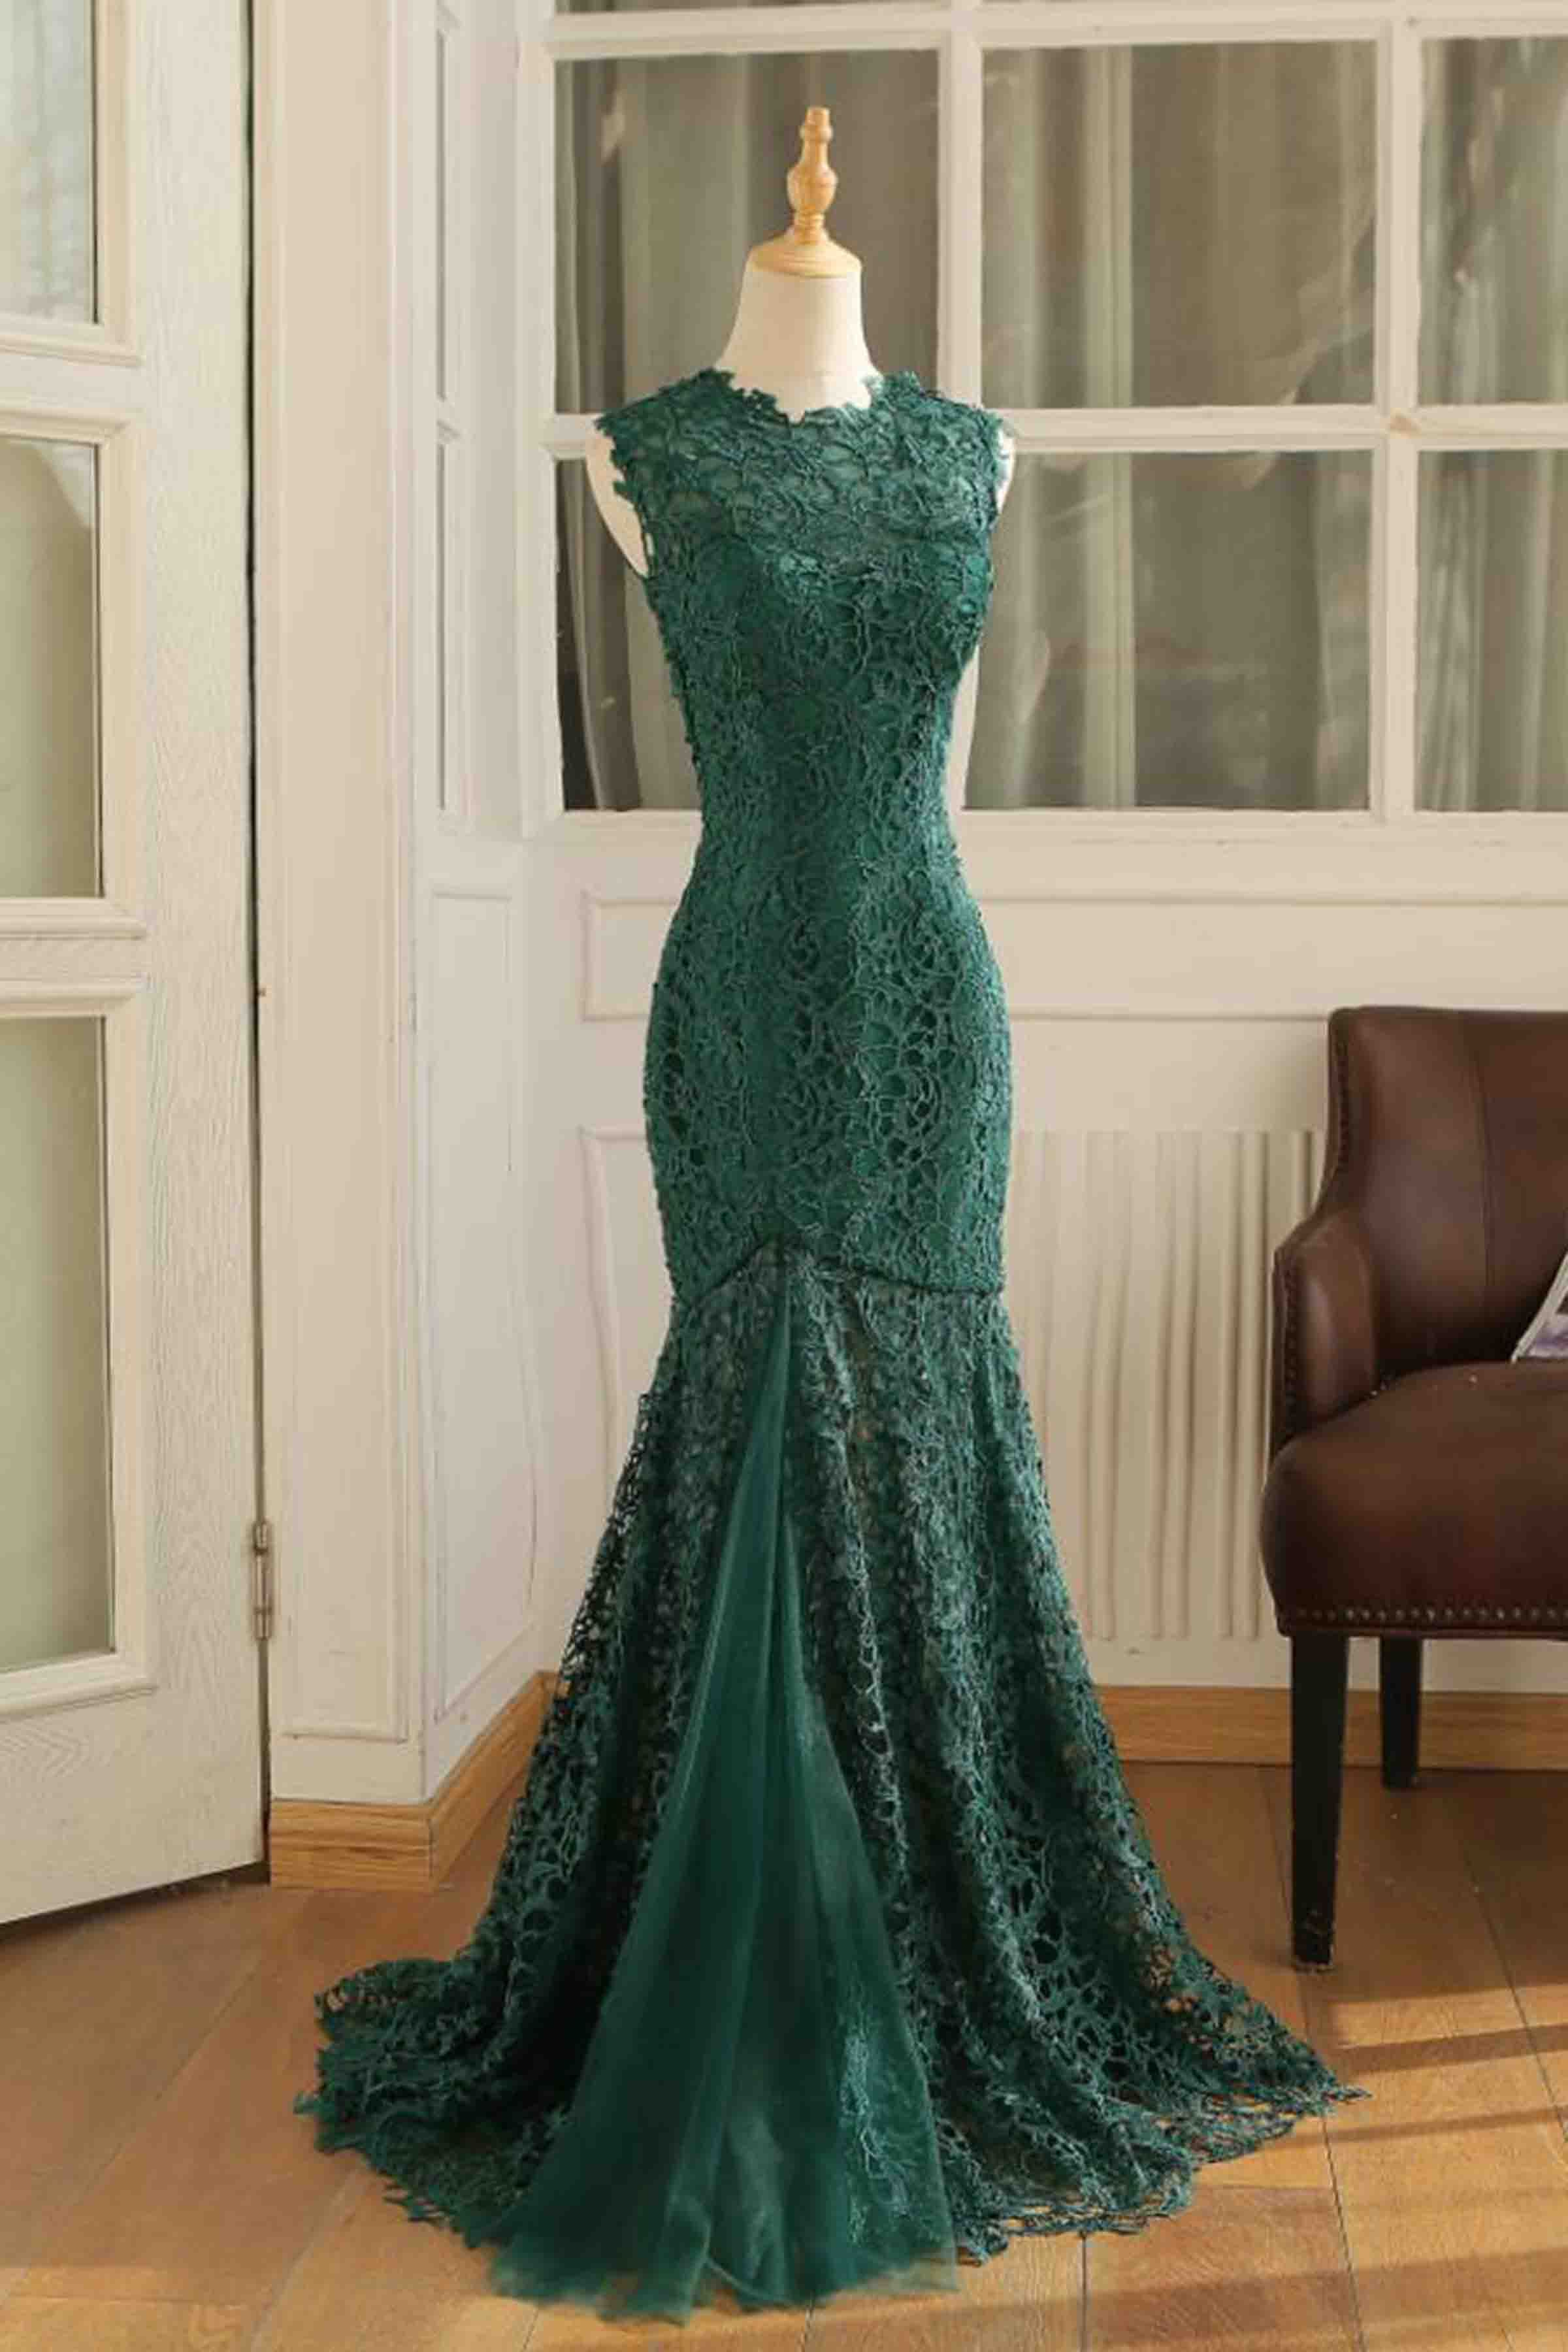 Green Lace Round Neck Mermaid See Through Long Prom Dresses From Girlsprom Evening Dresses Long Mermaid Prom Dresses Evening Dresses [ 3600 x 2400 Pixel ]